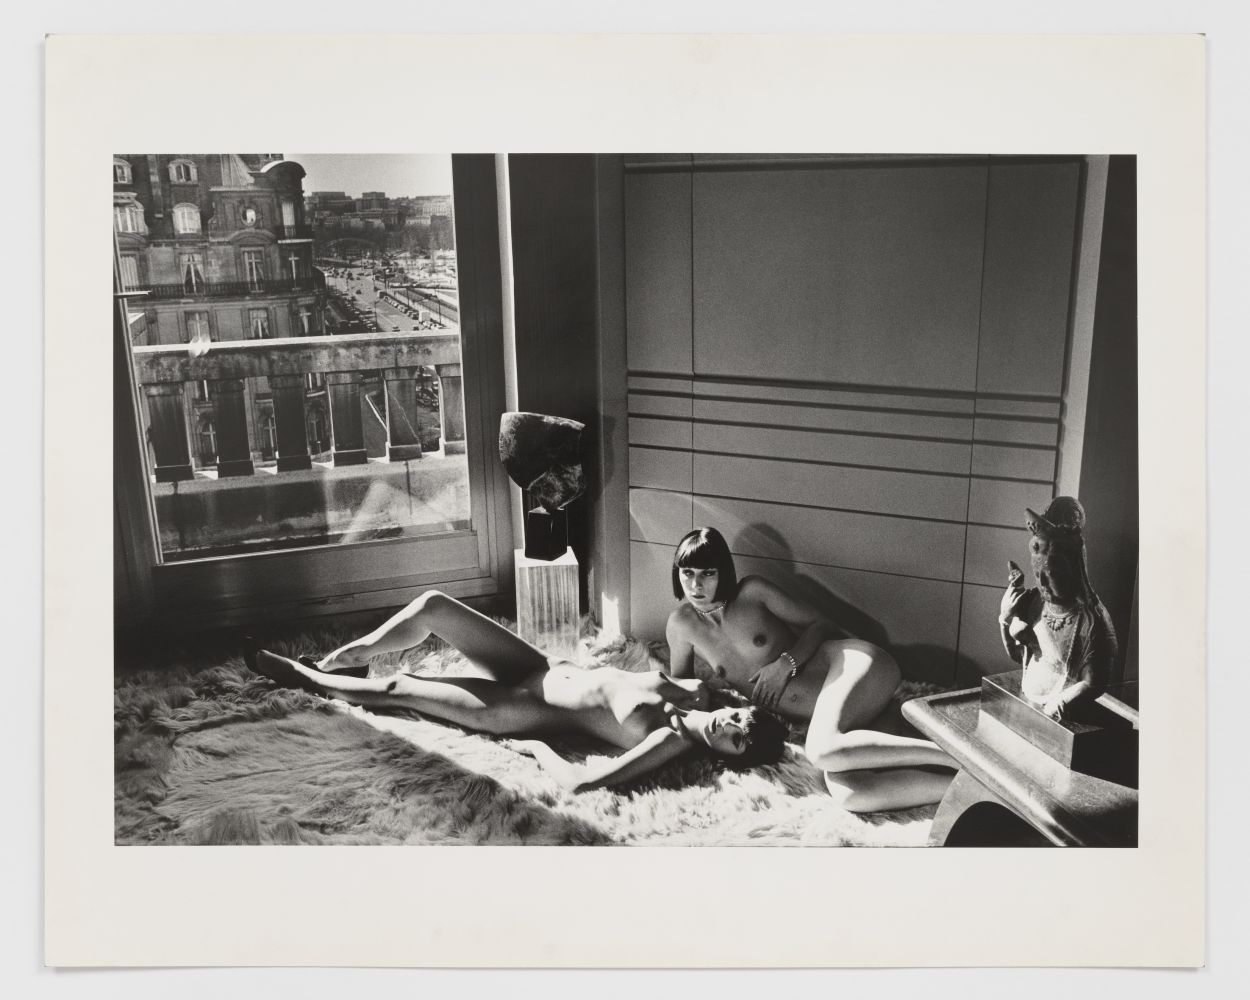 Black and white photographic print by Helmut Newton of two nude women laying down under a window